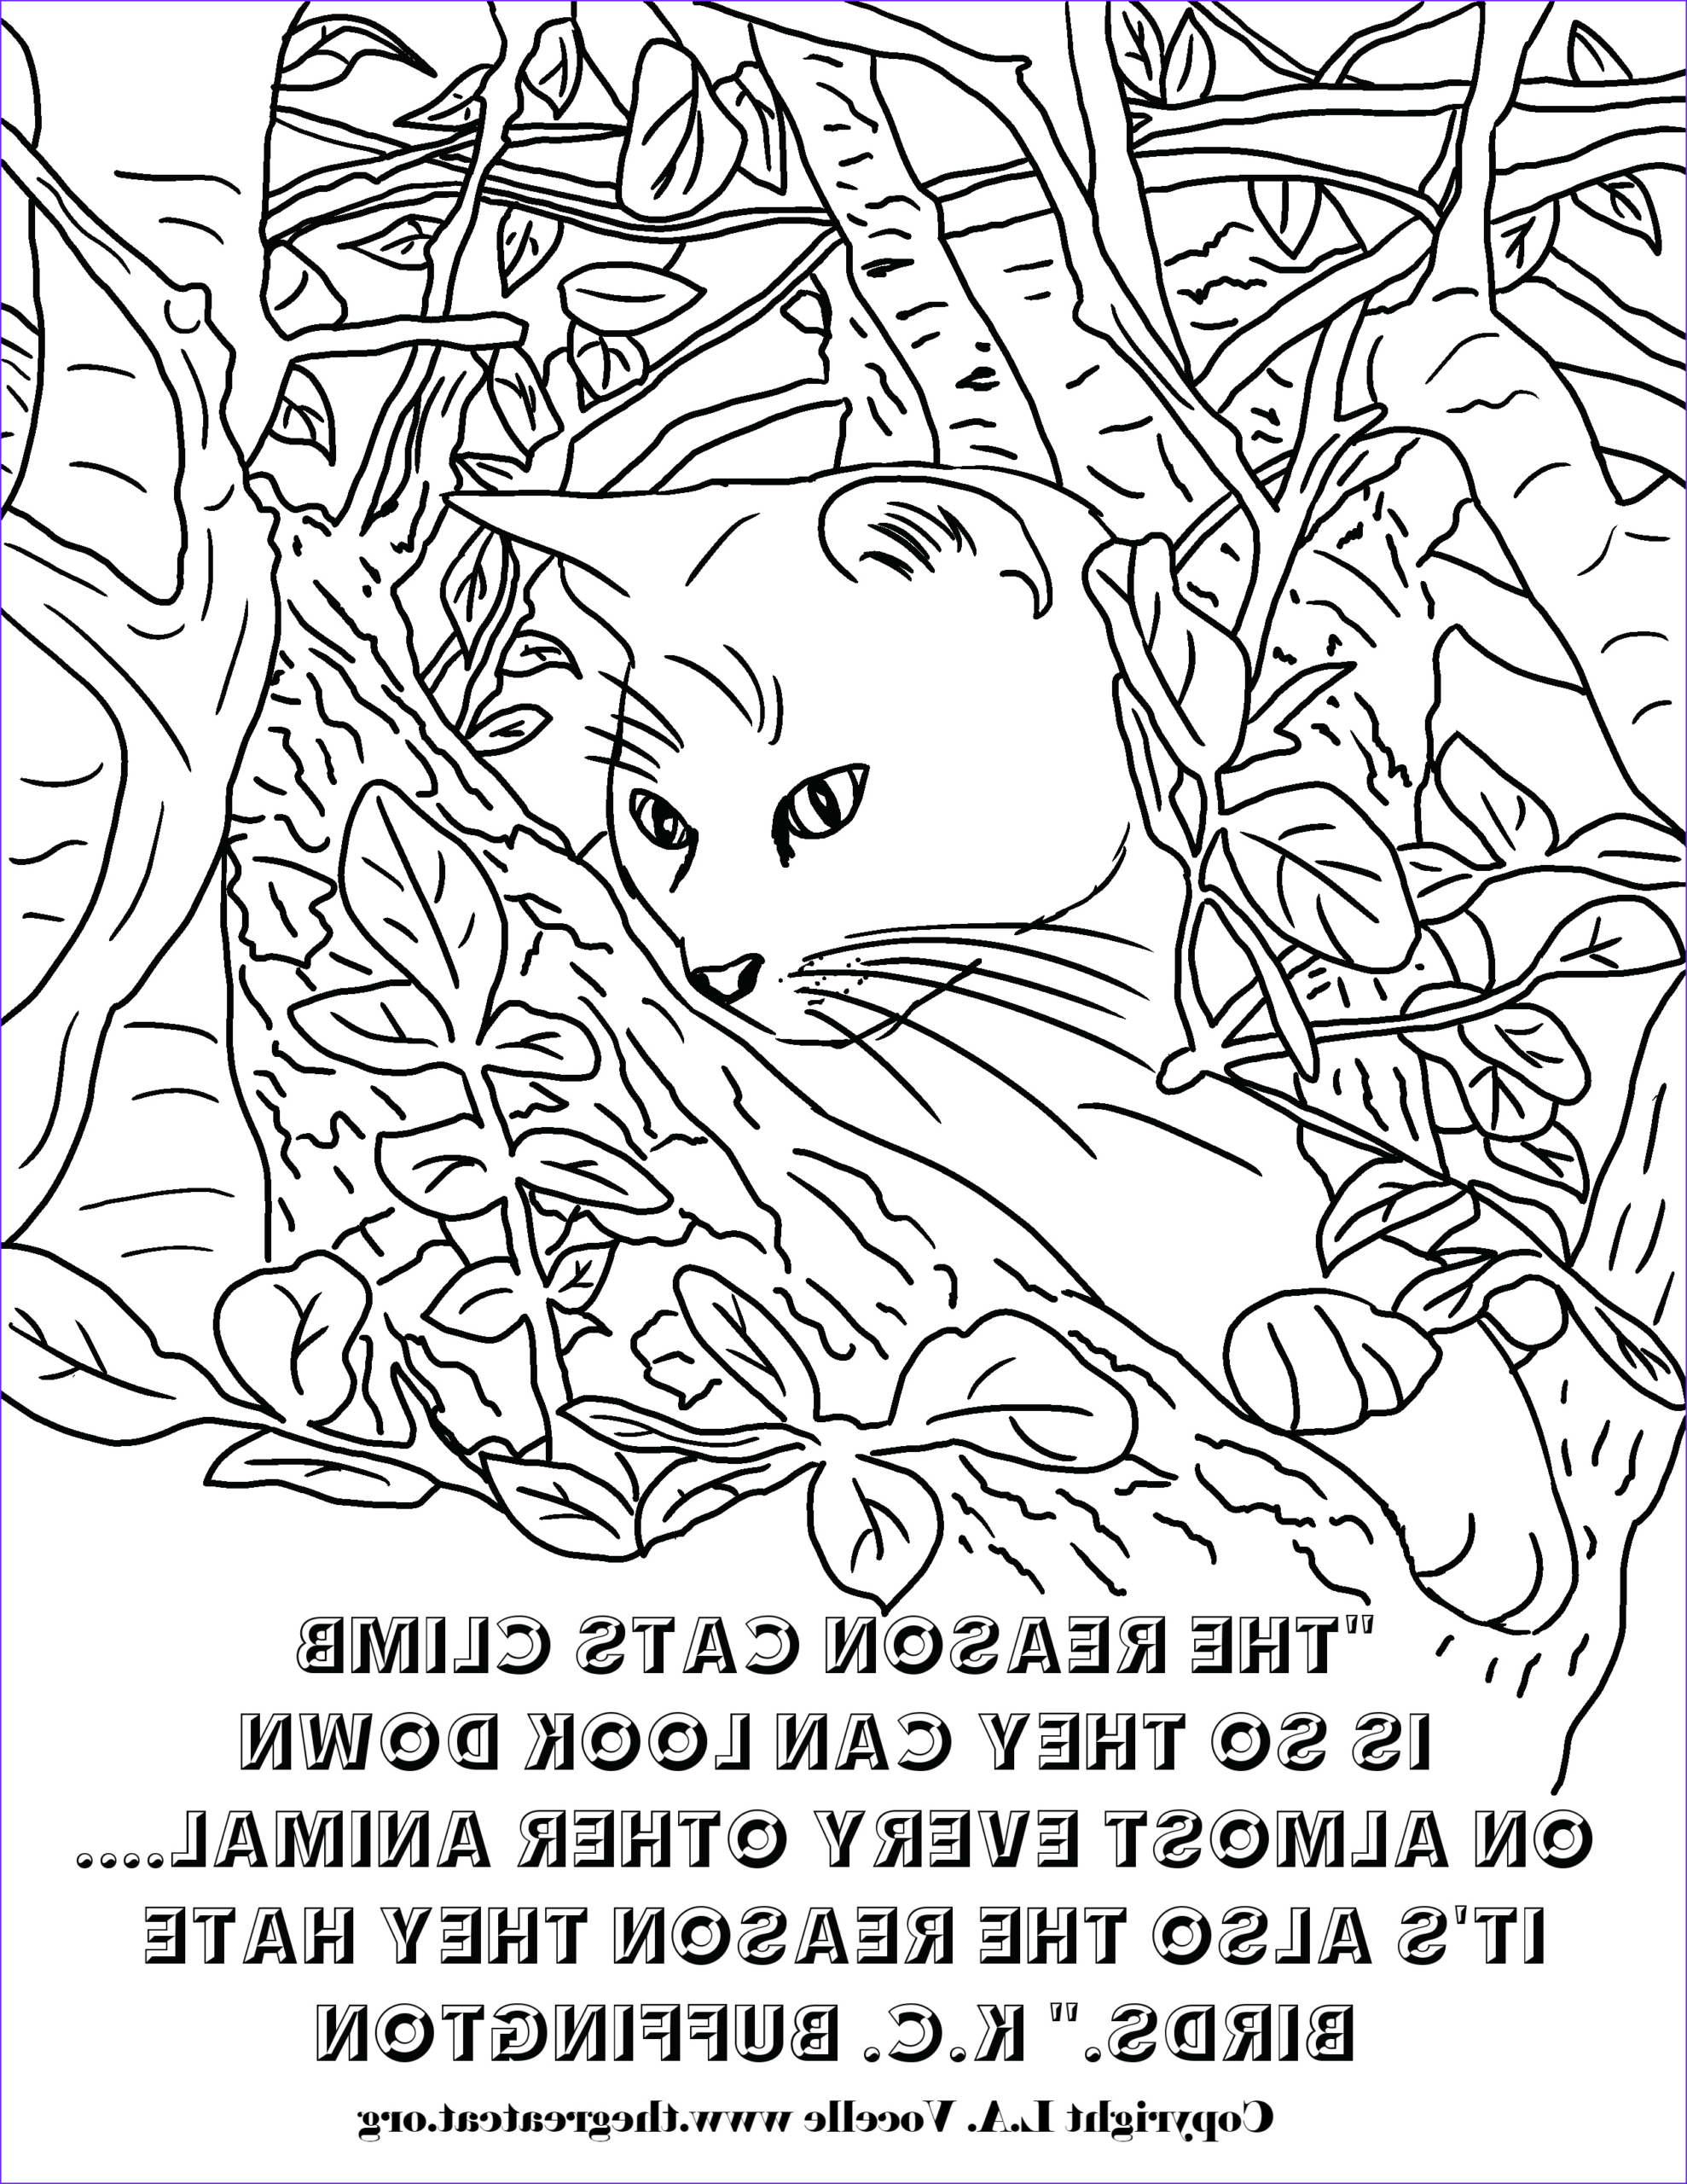 Copyright Free Coloring Pages Unique Images Free Coloring Pages